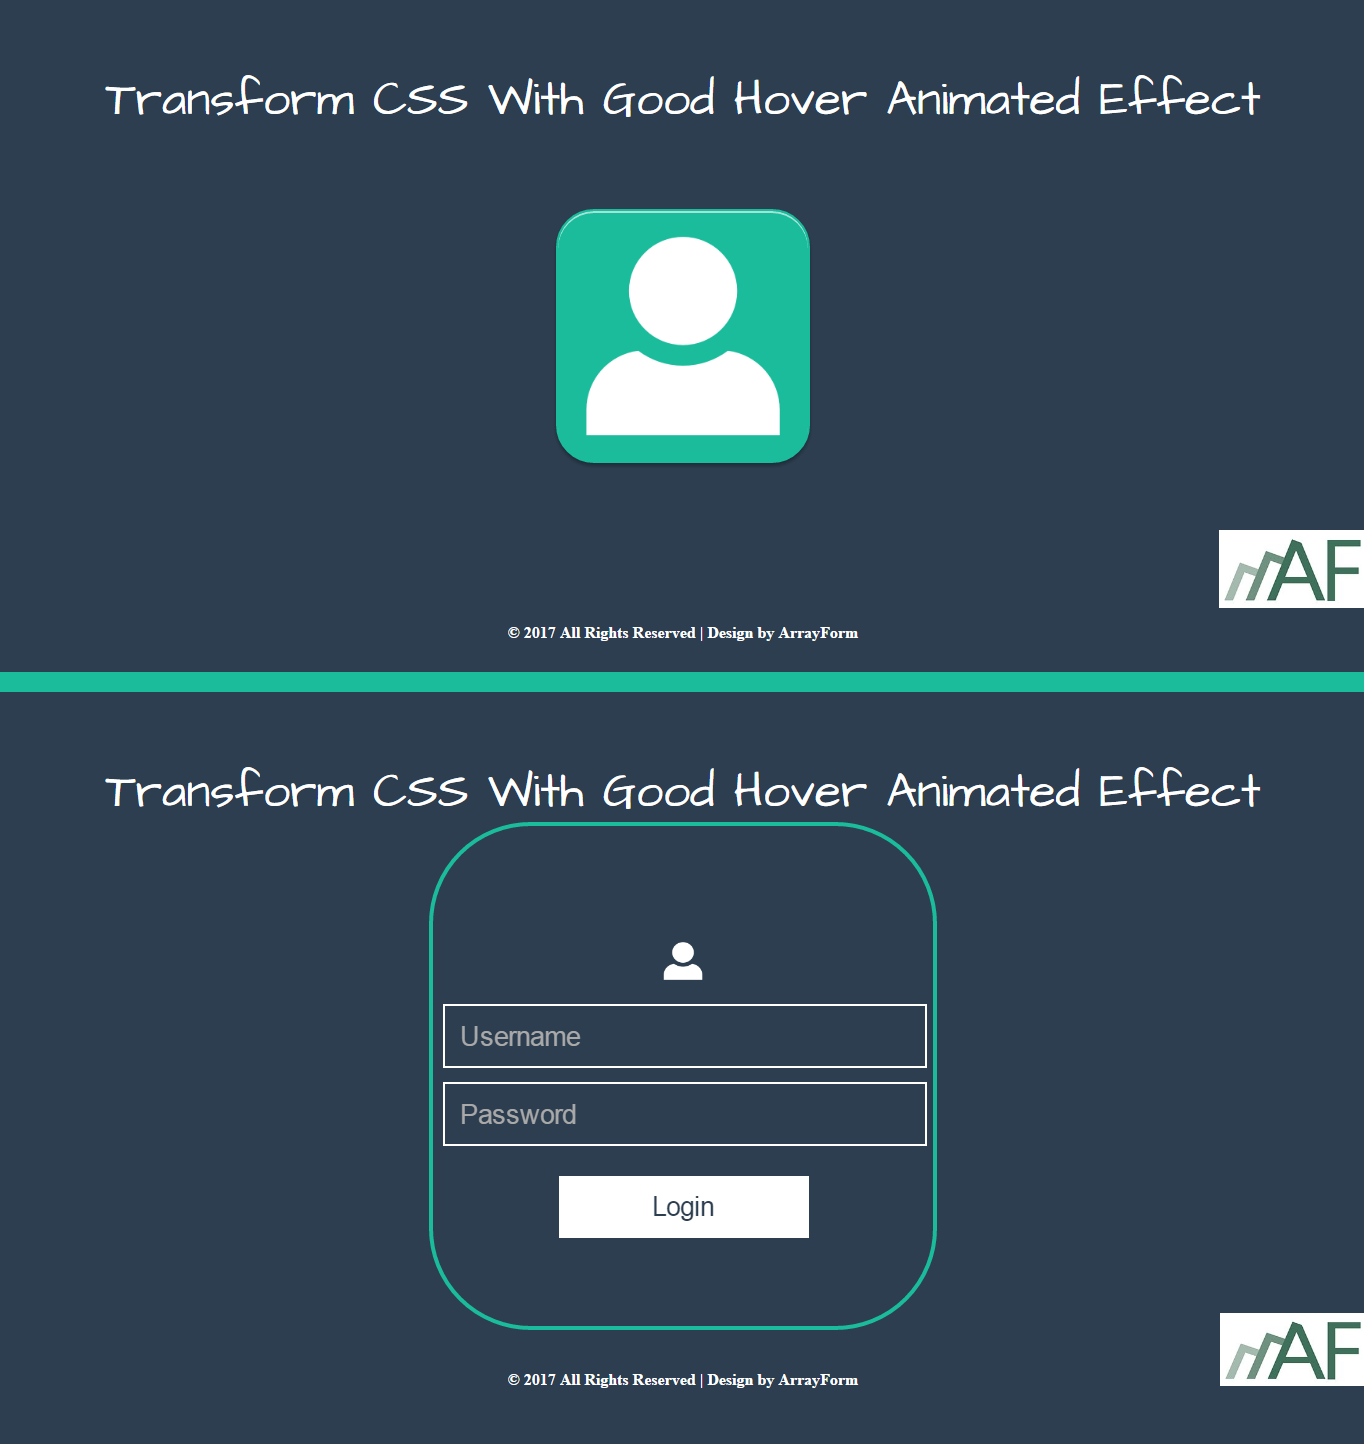 Perfect login form transform css is use with good hover animated perfect login form transform css is use with good hover animated effect perfect falaconquin